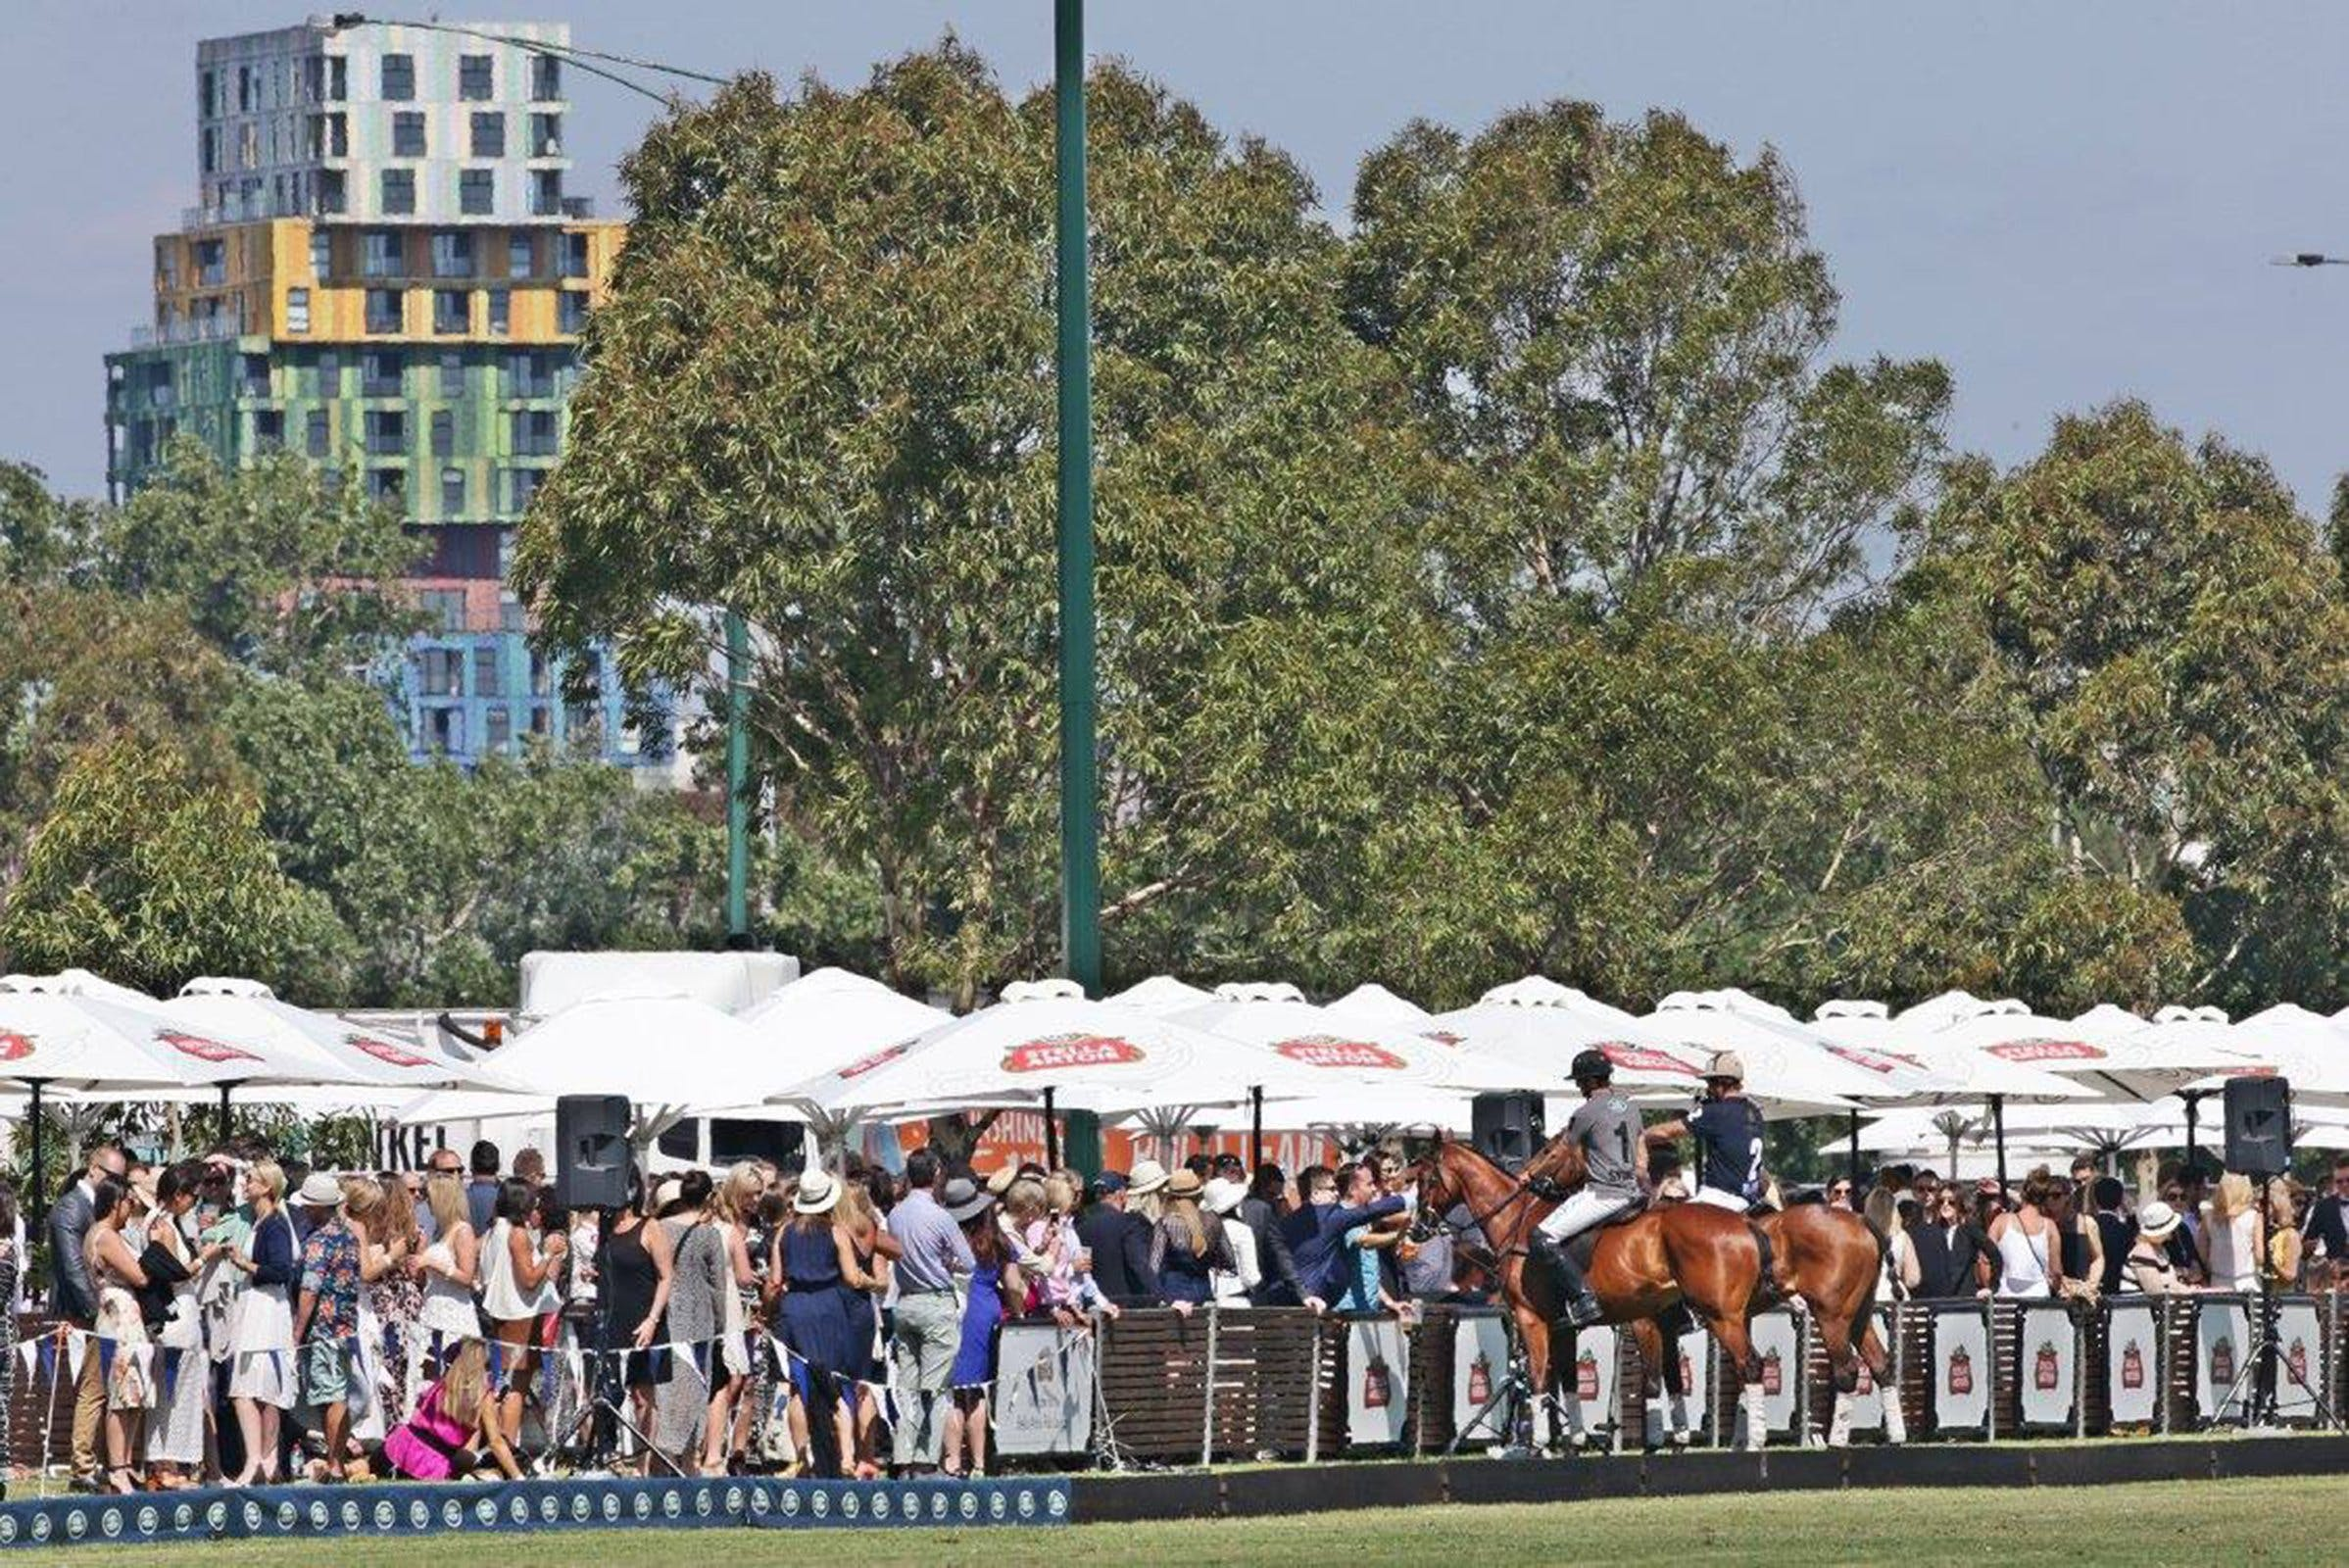 Land Rover Polo in the City - St Kilda Accommodation